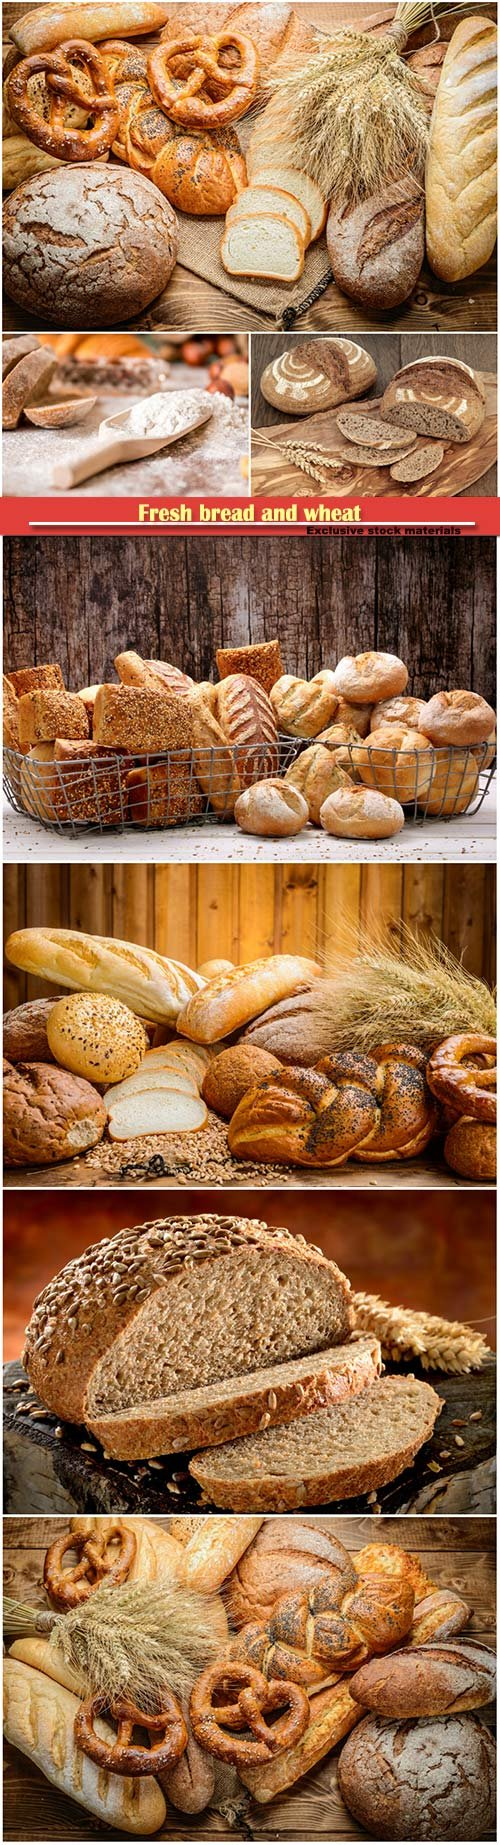 Fresh bread and wheat